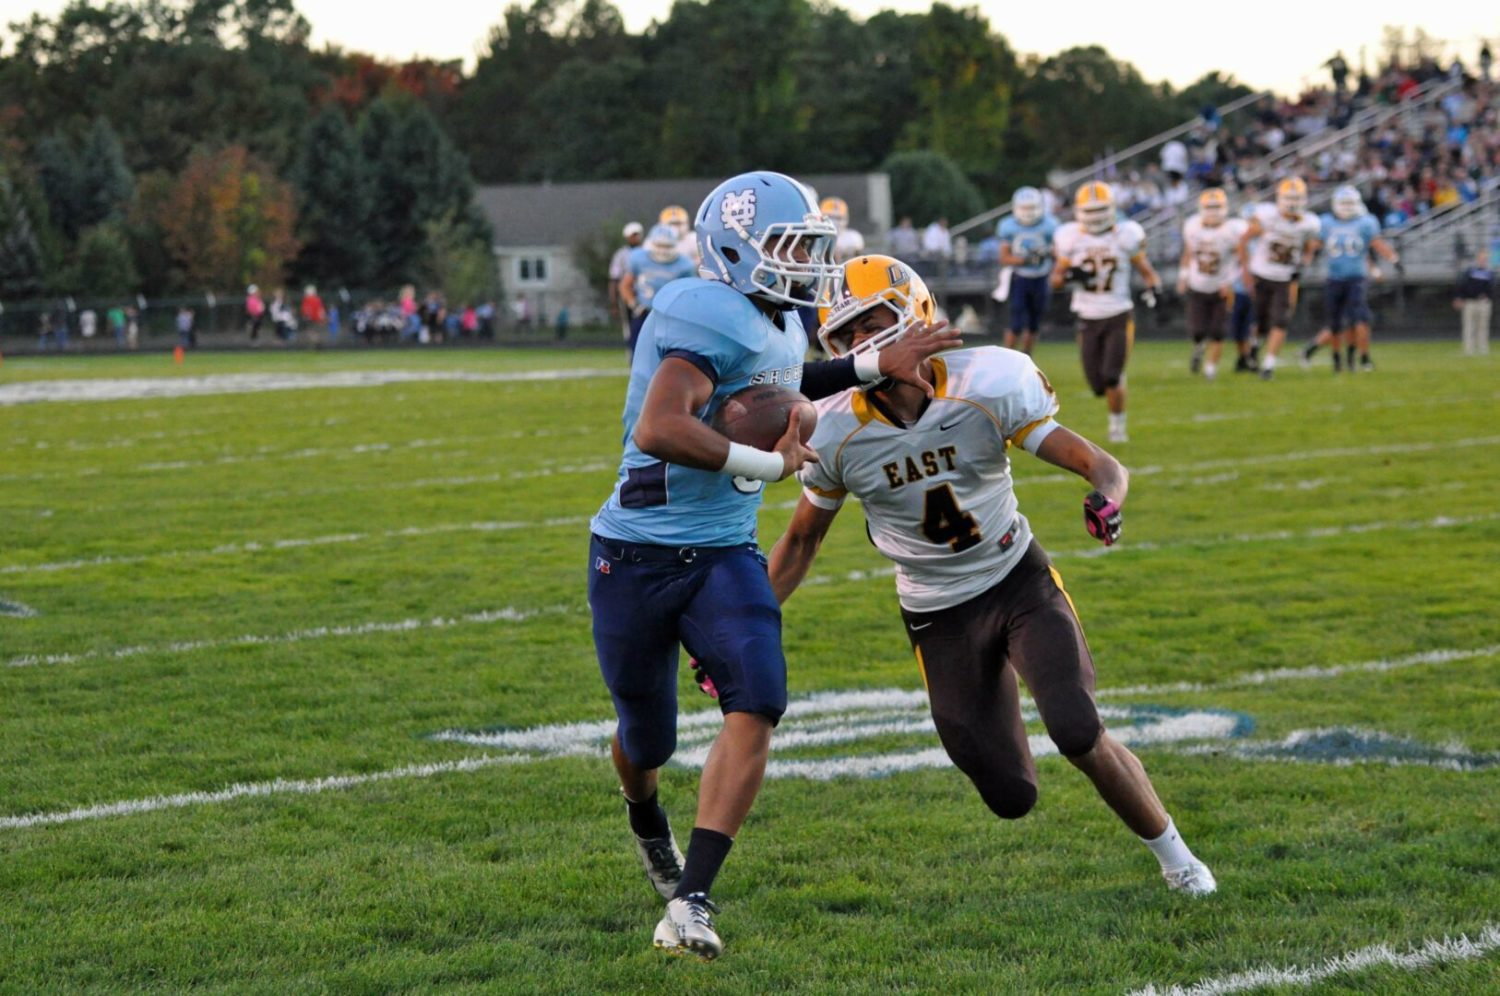 A monkey off their backs: Mona Shores nails down its first playoff berth with a 47-26 thumping of Zeeland East